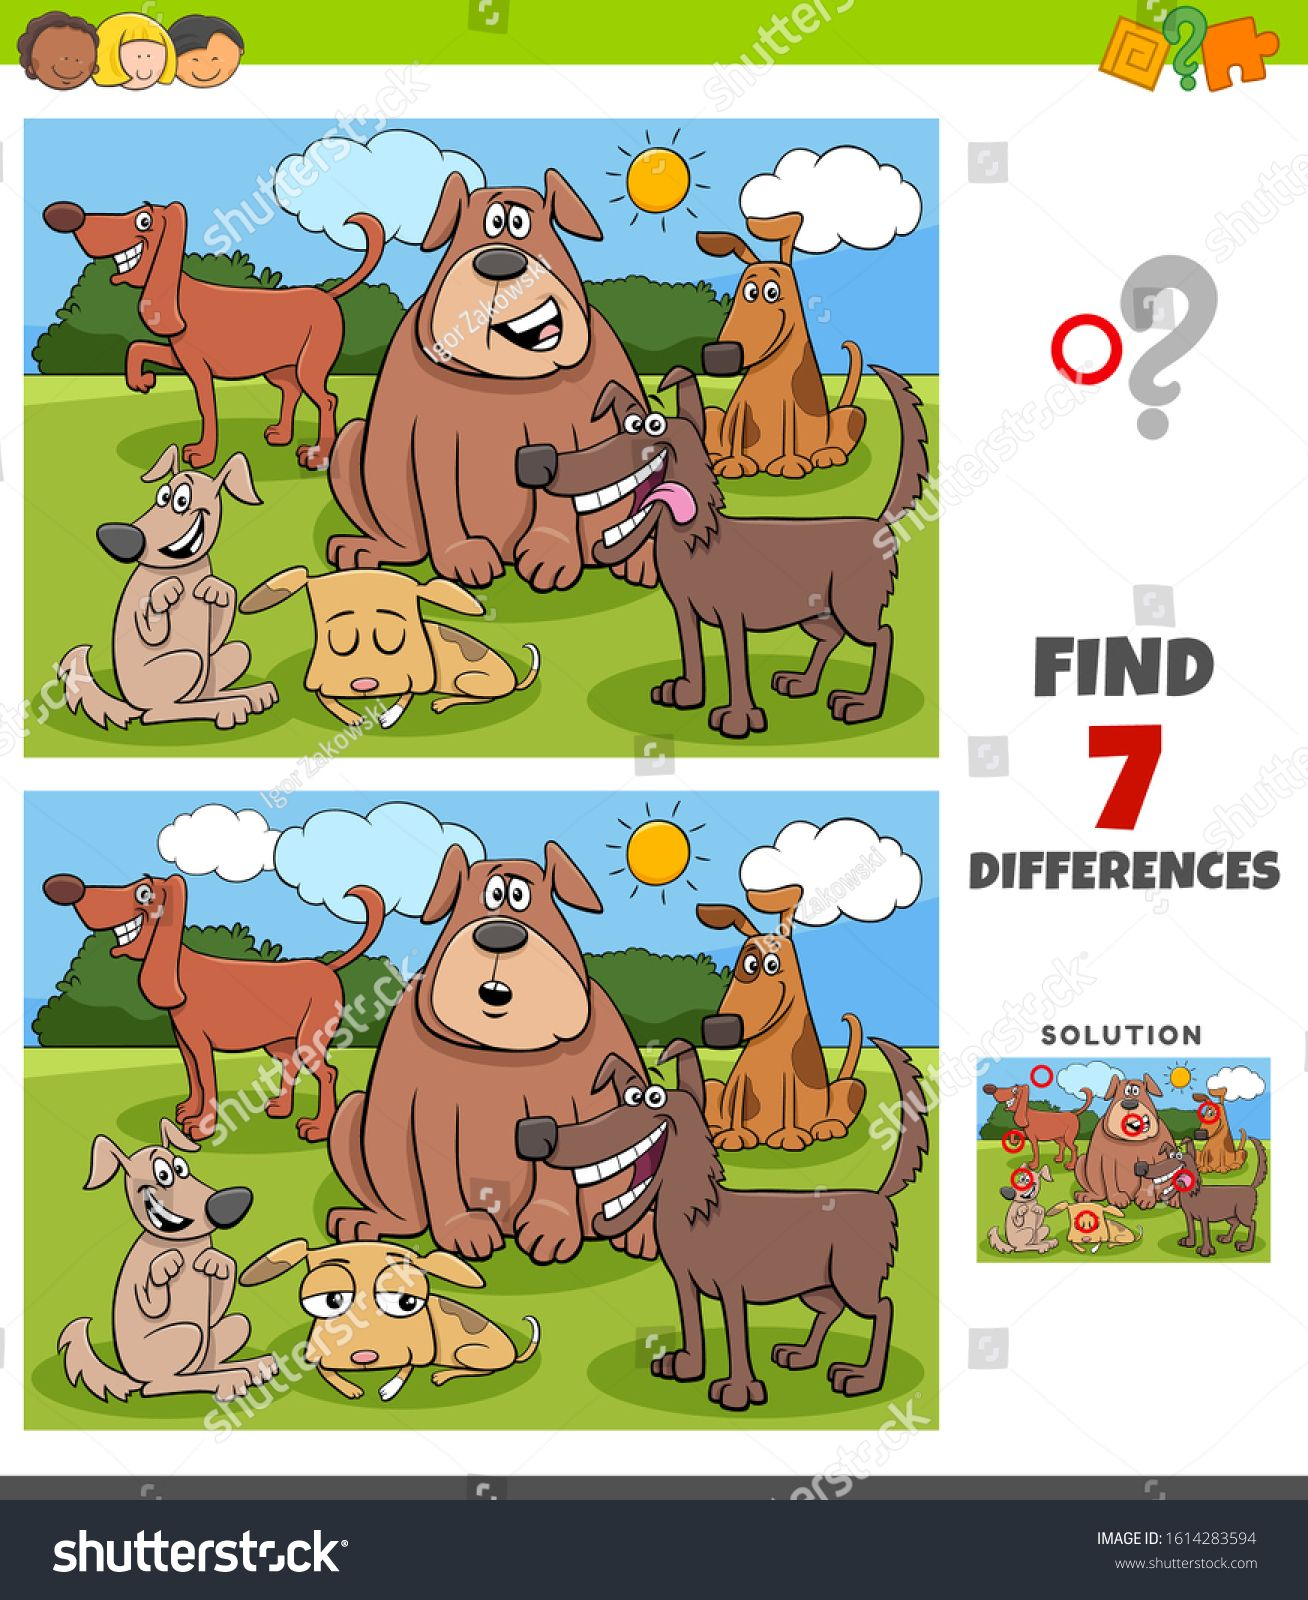 Cartoon Illustration Of Finding Differences Between